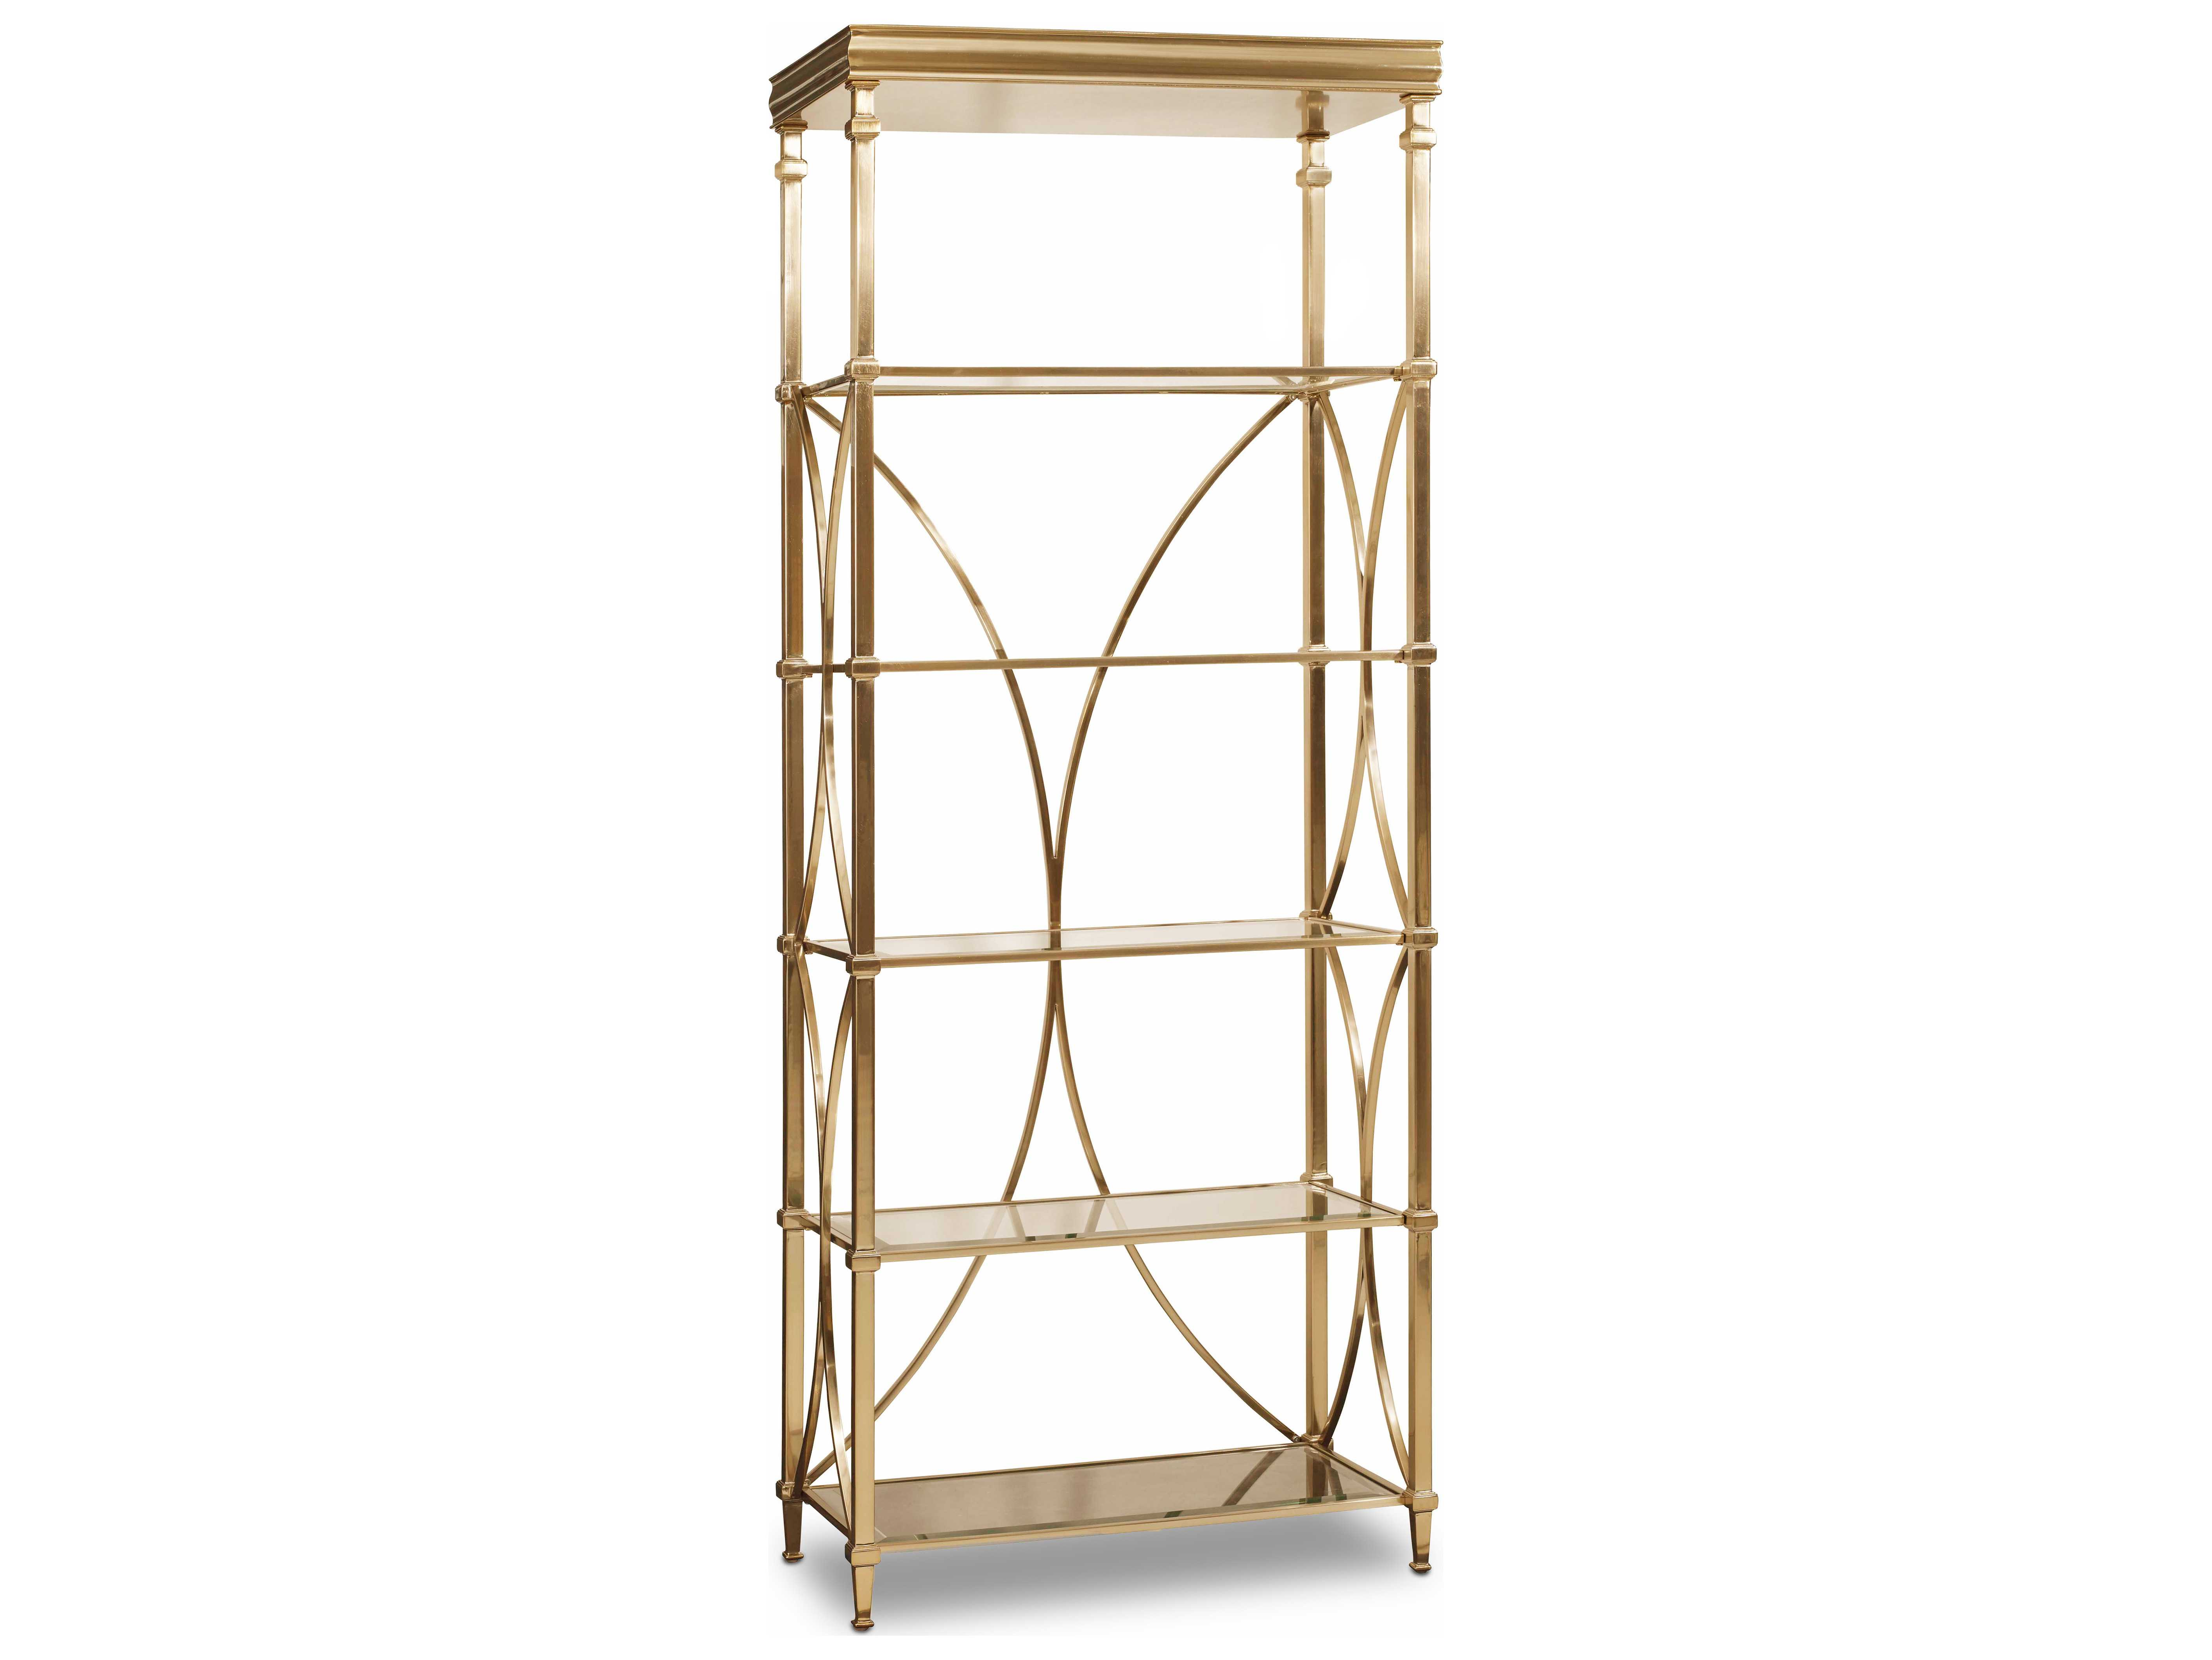 and from gold sauder bookcase blogpost metal edition room blog home tour glass in ideas amanda dining tower